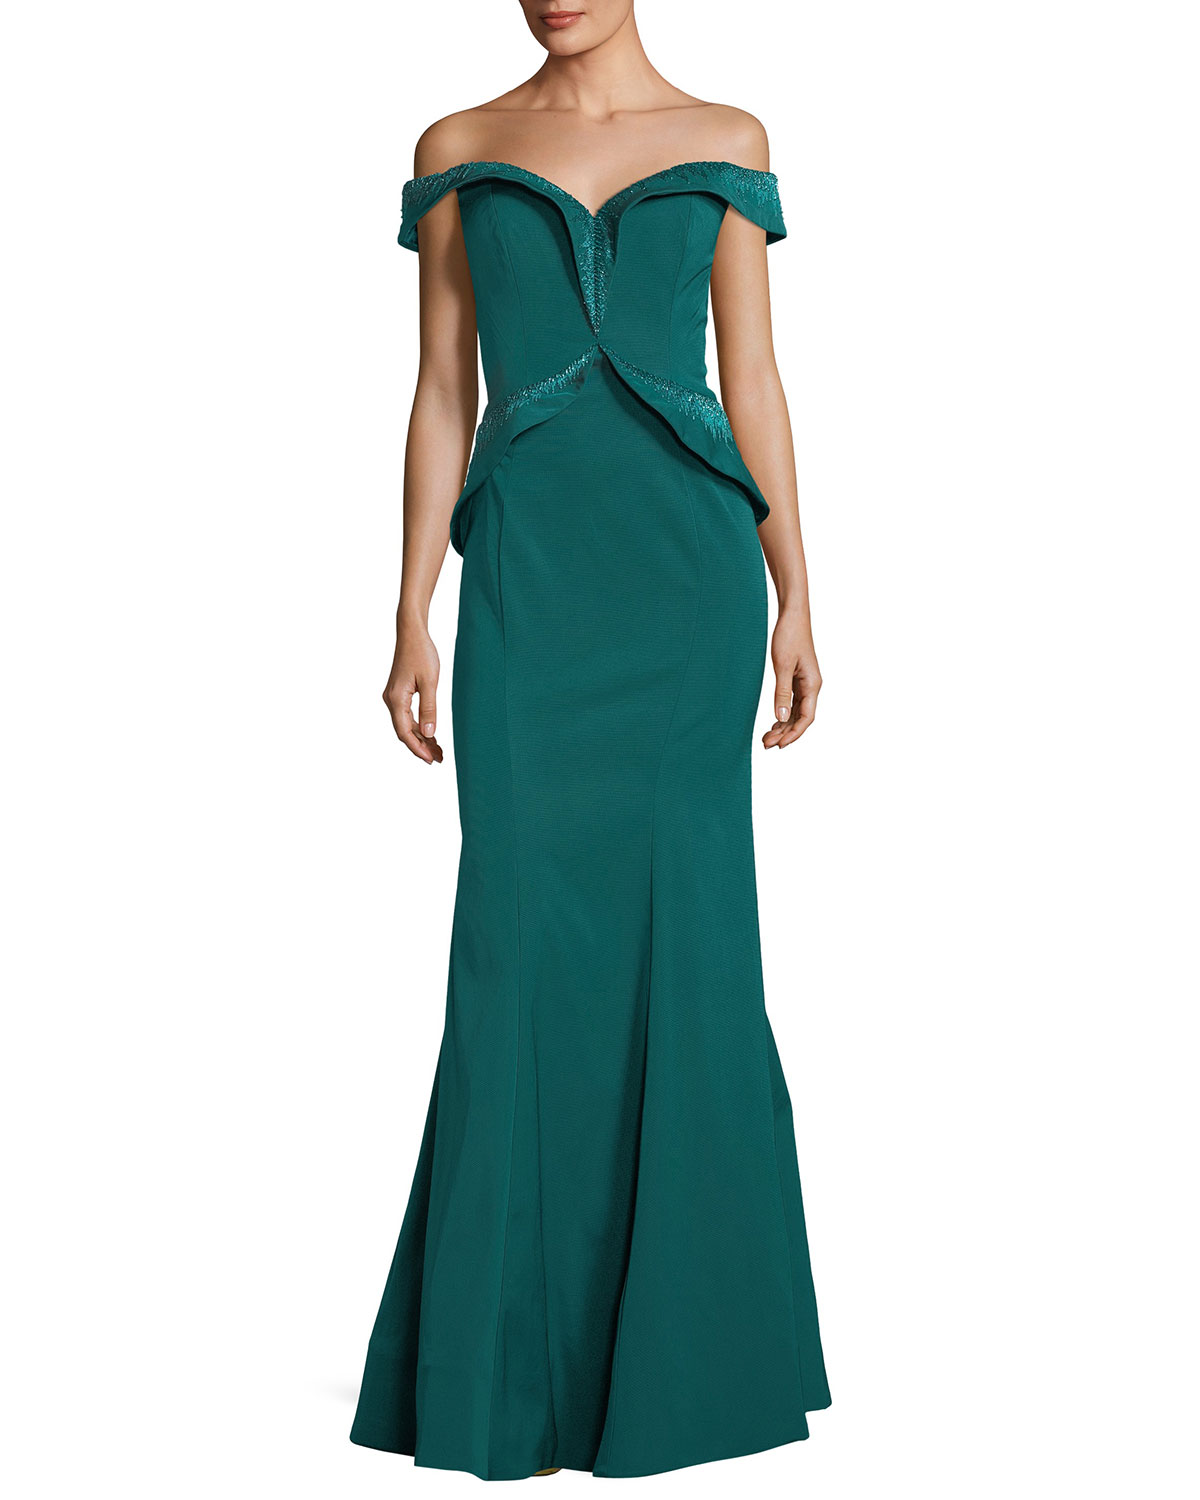 Awesome Neiman Marcus Mother Of The Groom Dresses Festooning - All ...